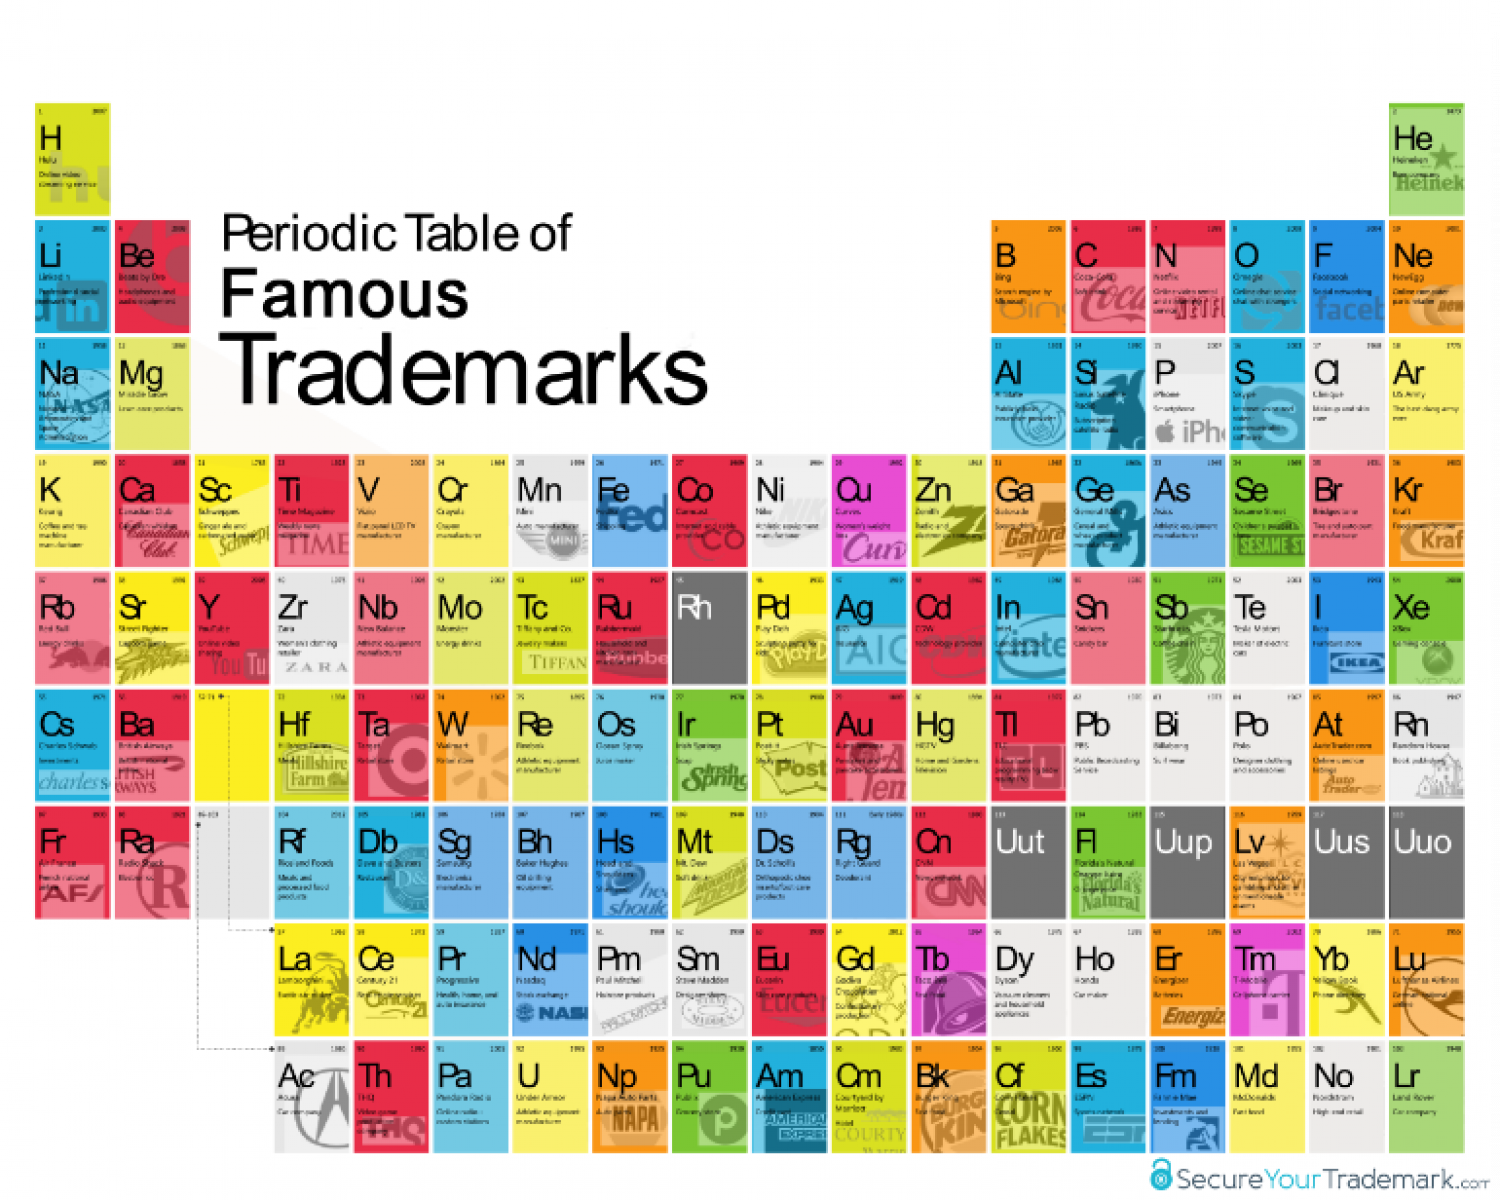 Periodic Table of Famous Trademarks Infographic